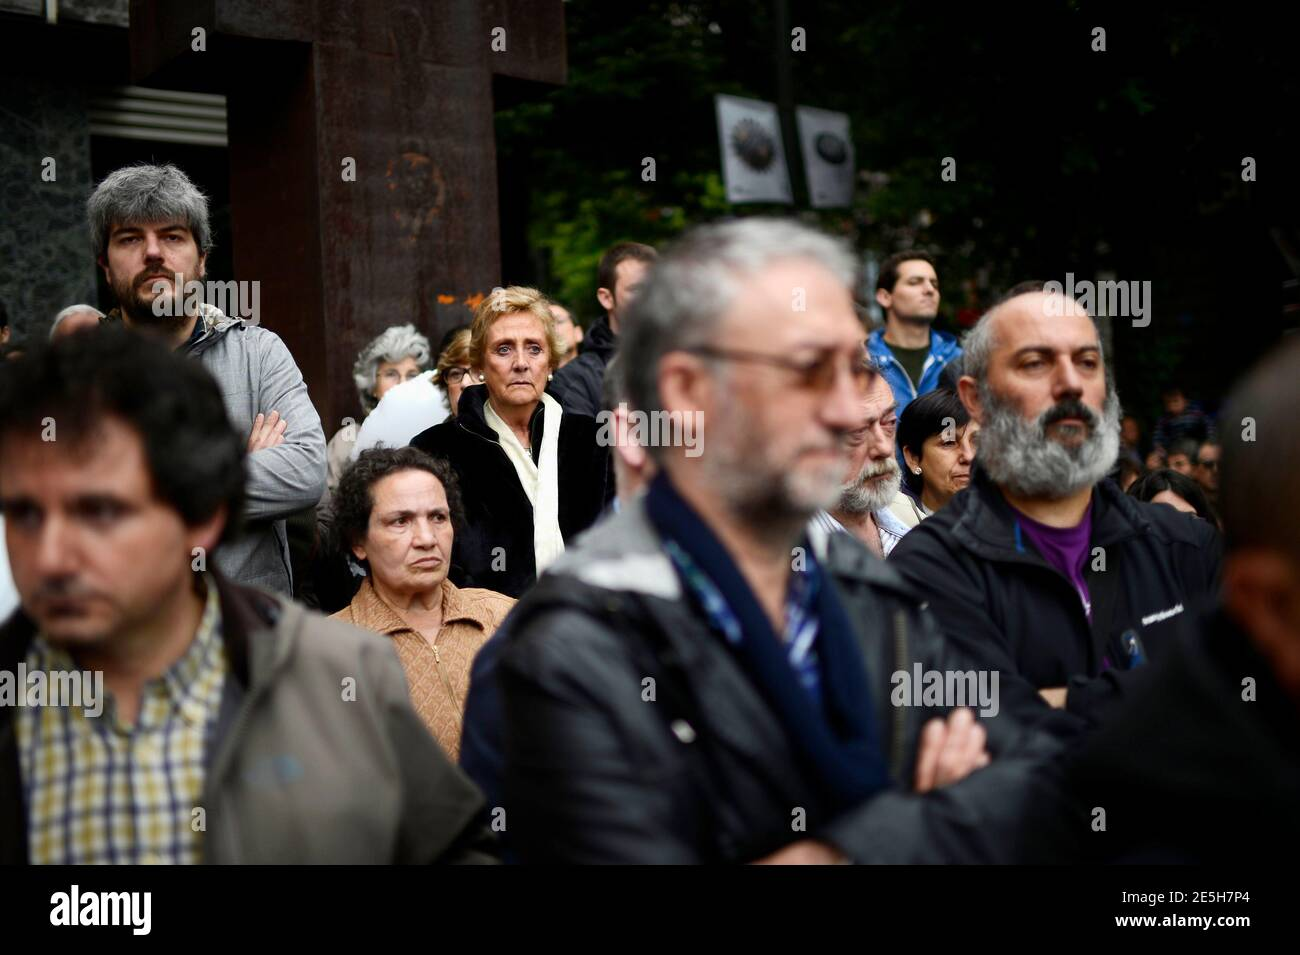 Supporters listen to speeches during Basque peace association Gesto Por La Paz (A Gesture For Peace) final meeting in Bilbao June 1, 2013. The peace group decided to finish after 28 years of existence, following armed Basque separatists ETA's 2011 permanent ceasefire and cessation of armed activity.  REUTERS/Vincent West (SPAIN - Tags: POLITICS CIVIL UNREST) Stock Photo